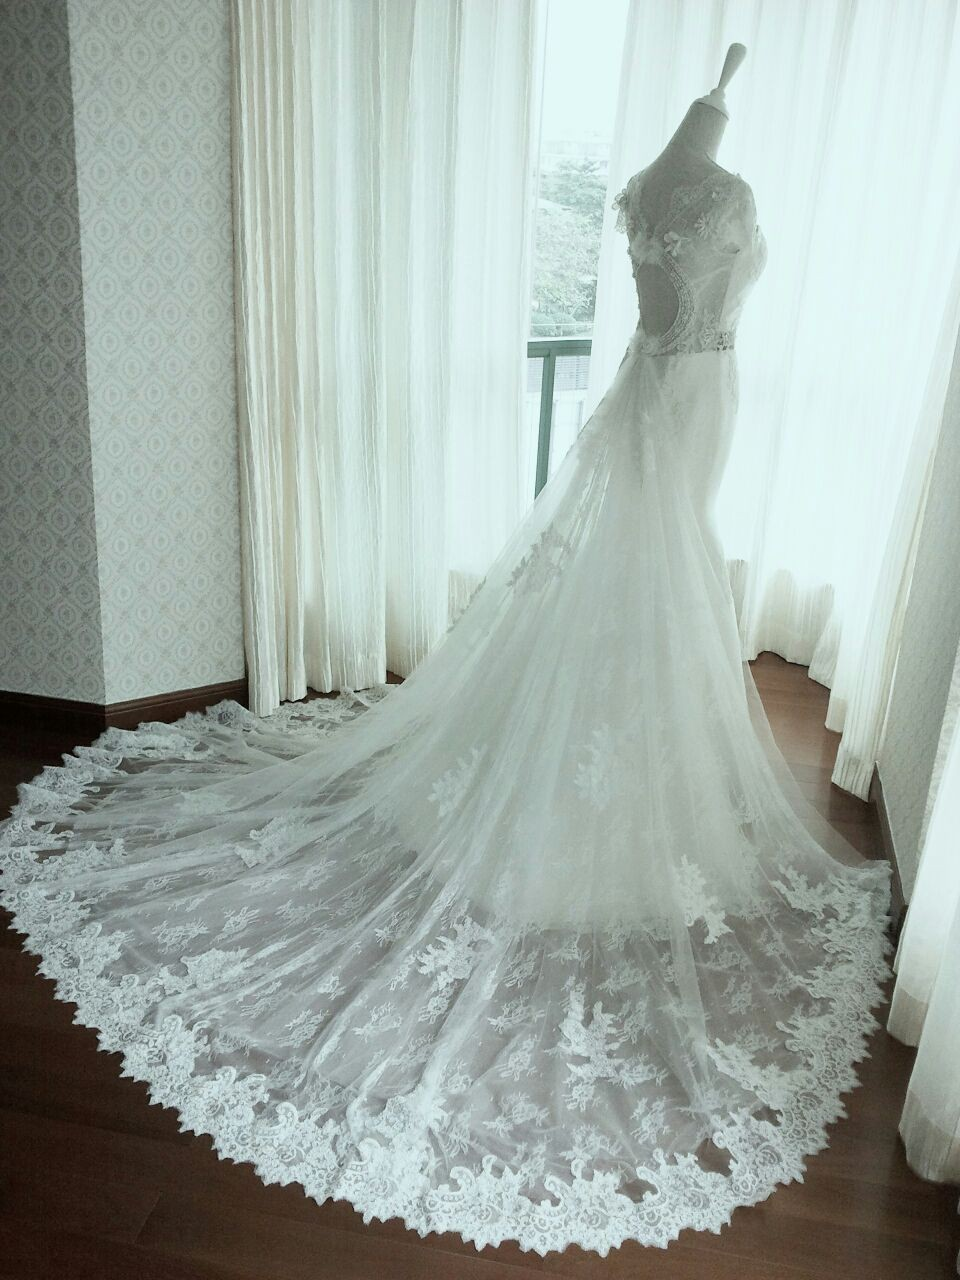 wedding gown-spread behind